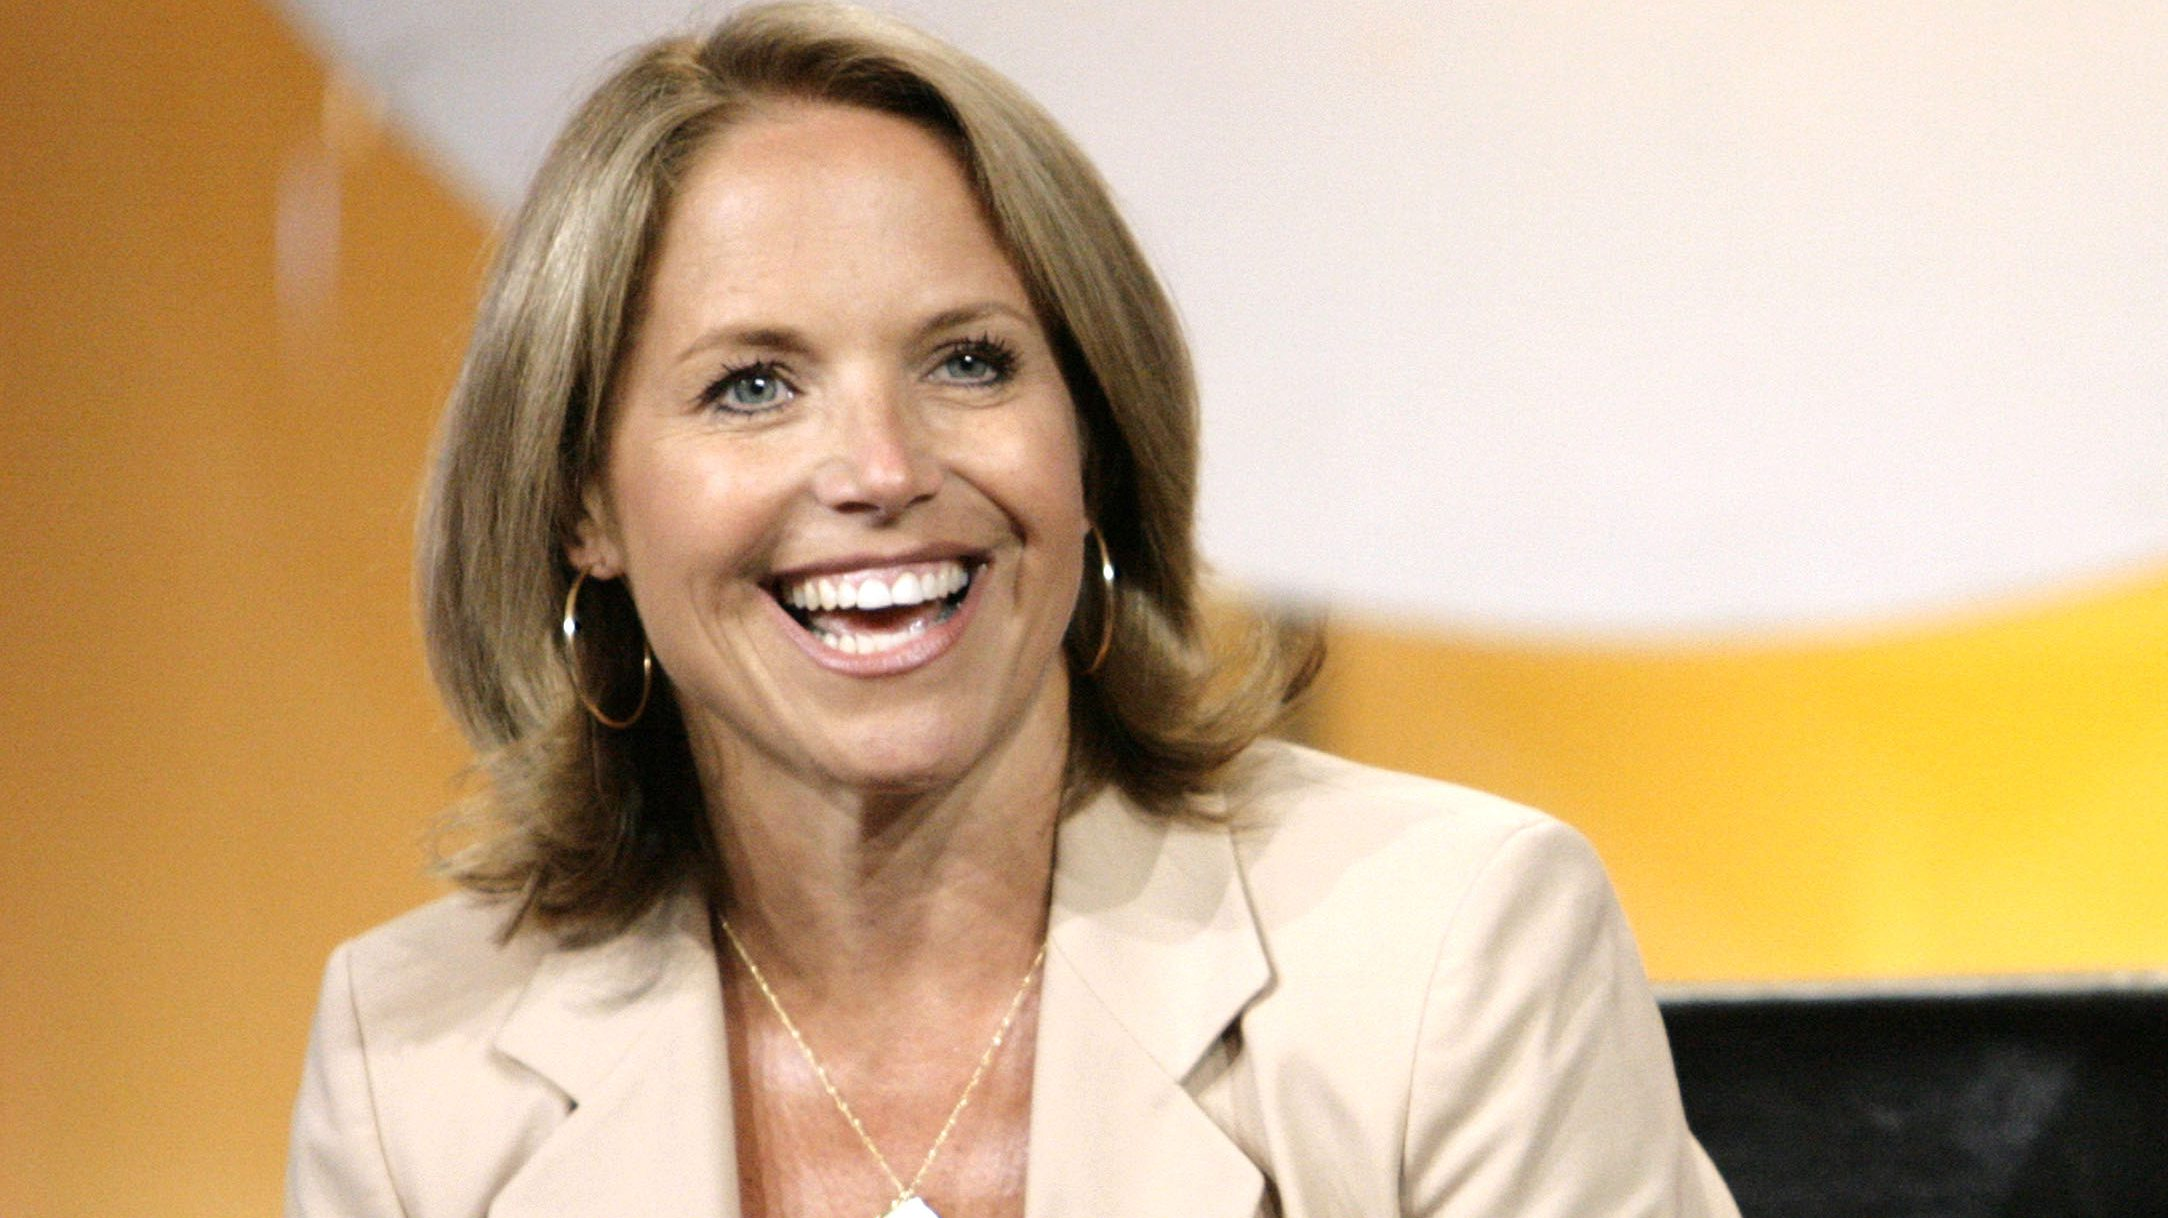 News anchor Katie Couric